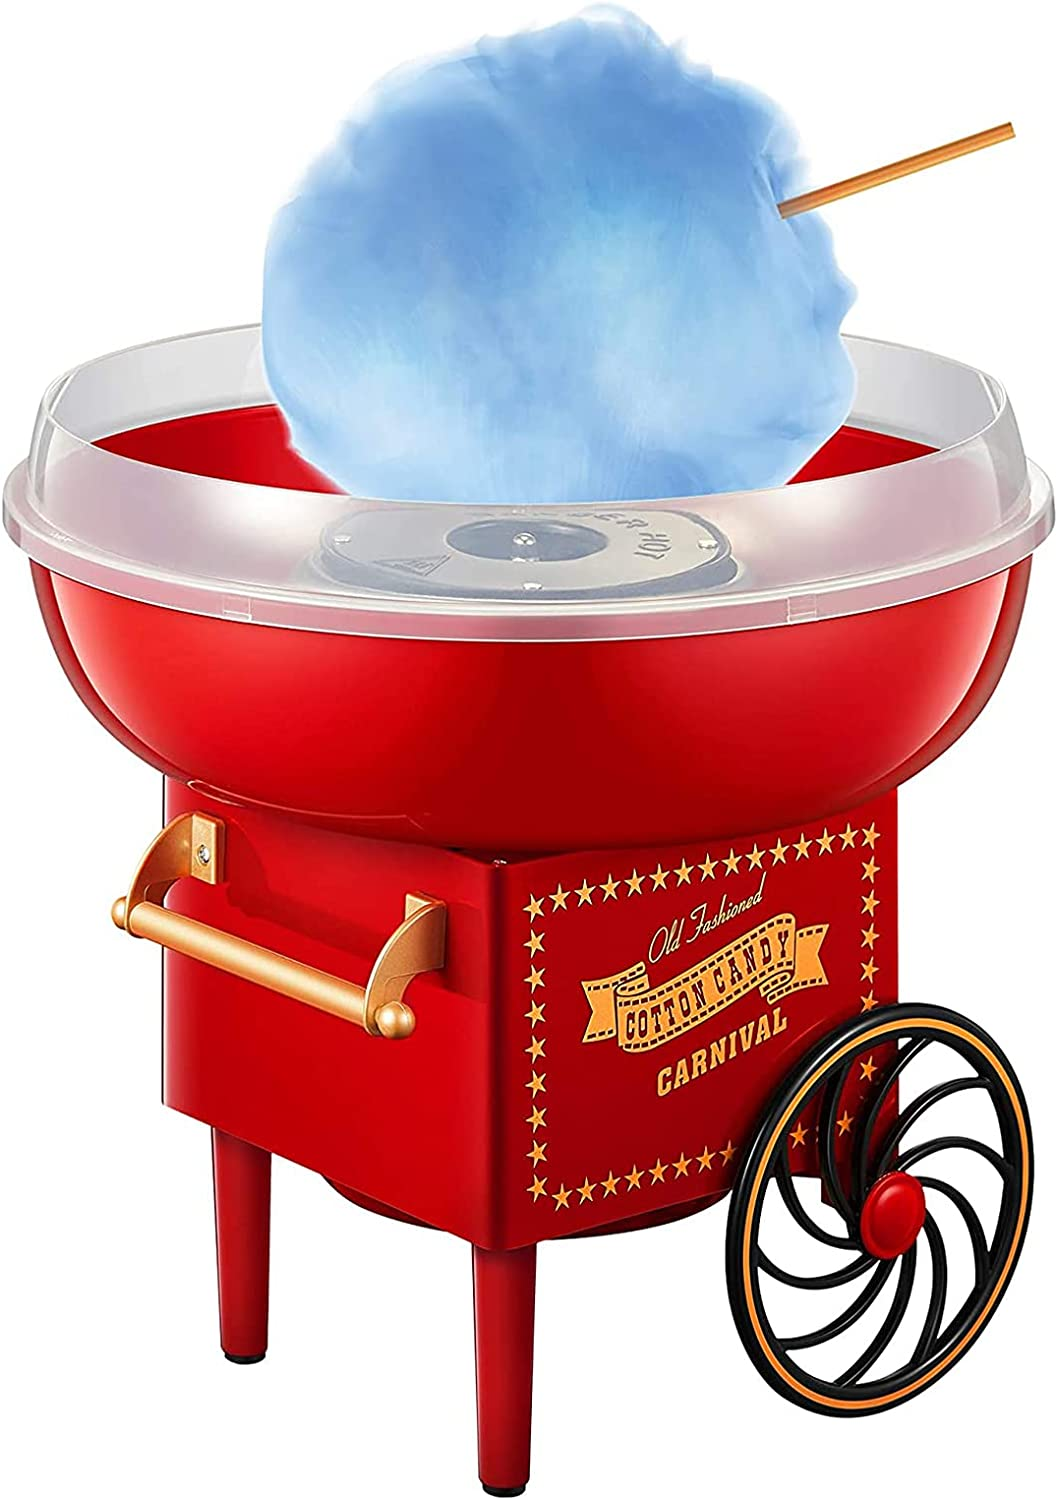 WLL-DP Mini Cotton Candy Machine Credence H Max 89% OFF for Maker Kids